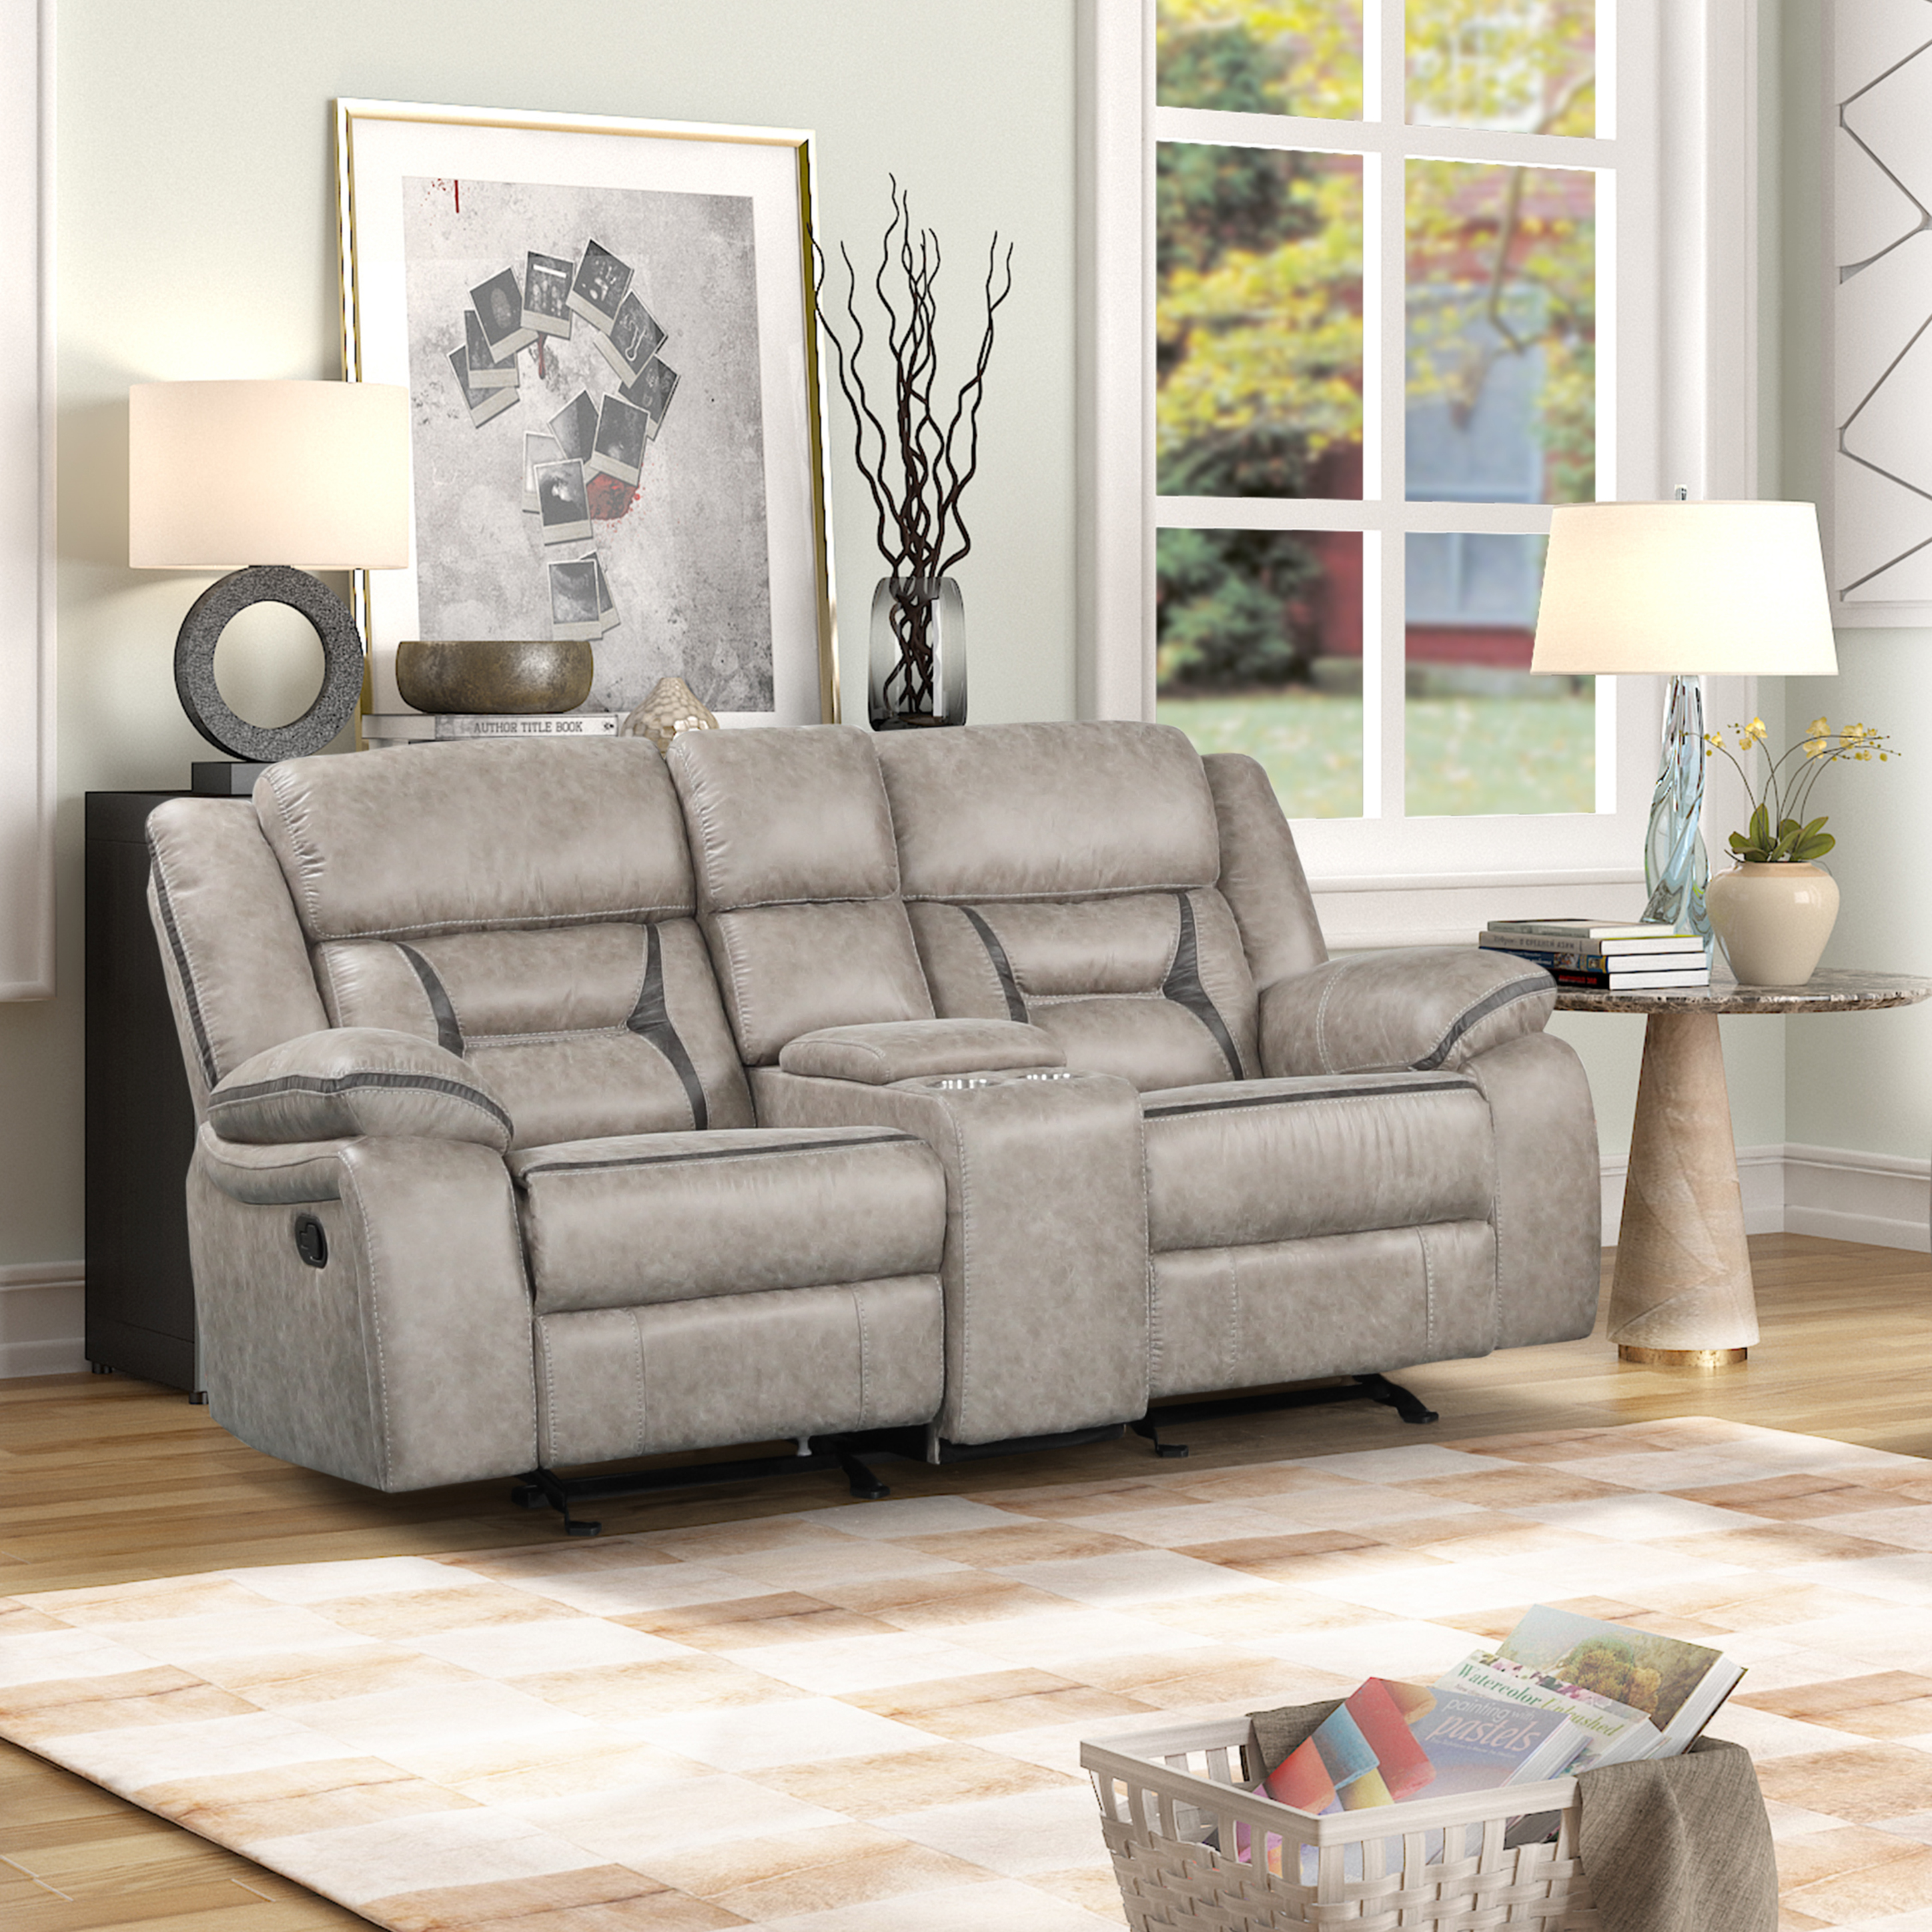 Elkton Manual Motion Reclining Loveseat with Storage Console, Taupe